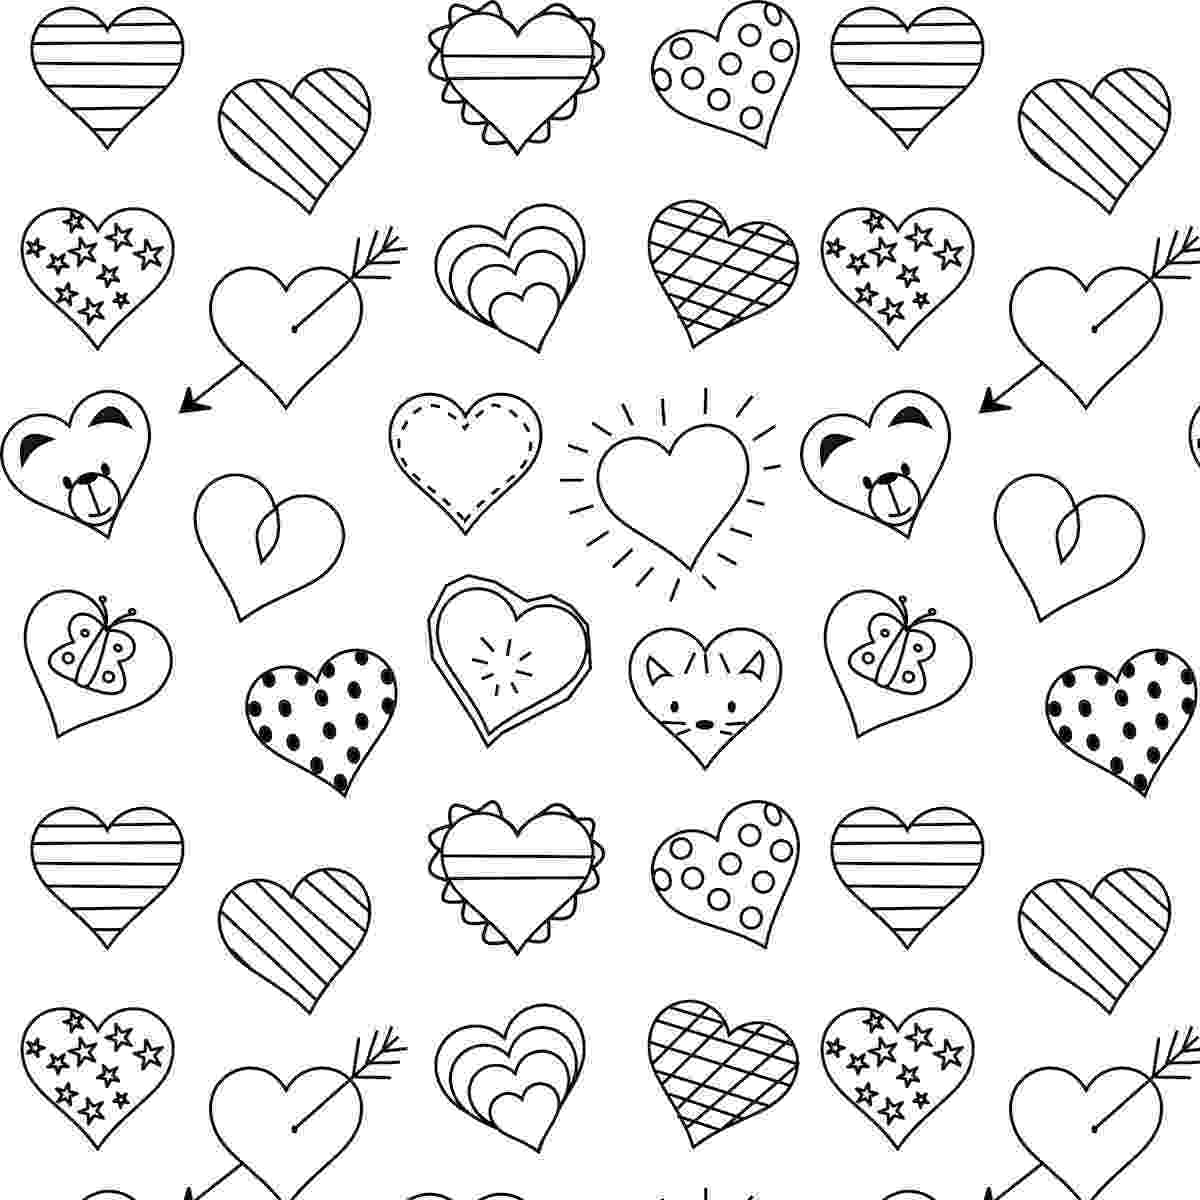 heart printable coloring pages free printable heart coloring pages for kids cool2bkids pages heart printable coloring